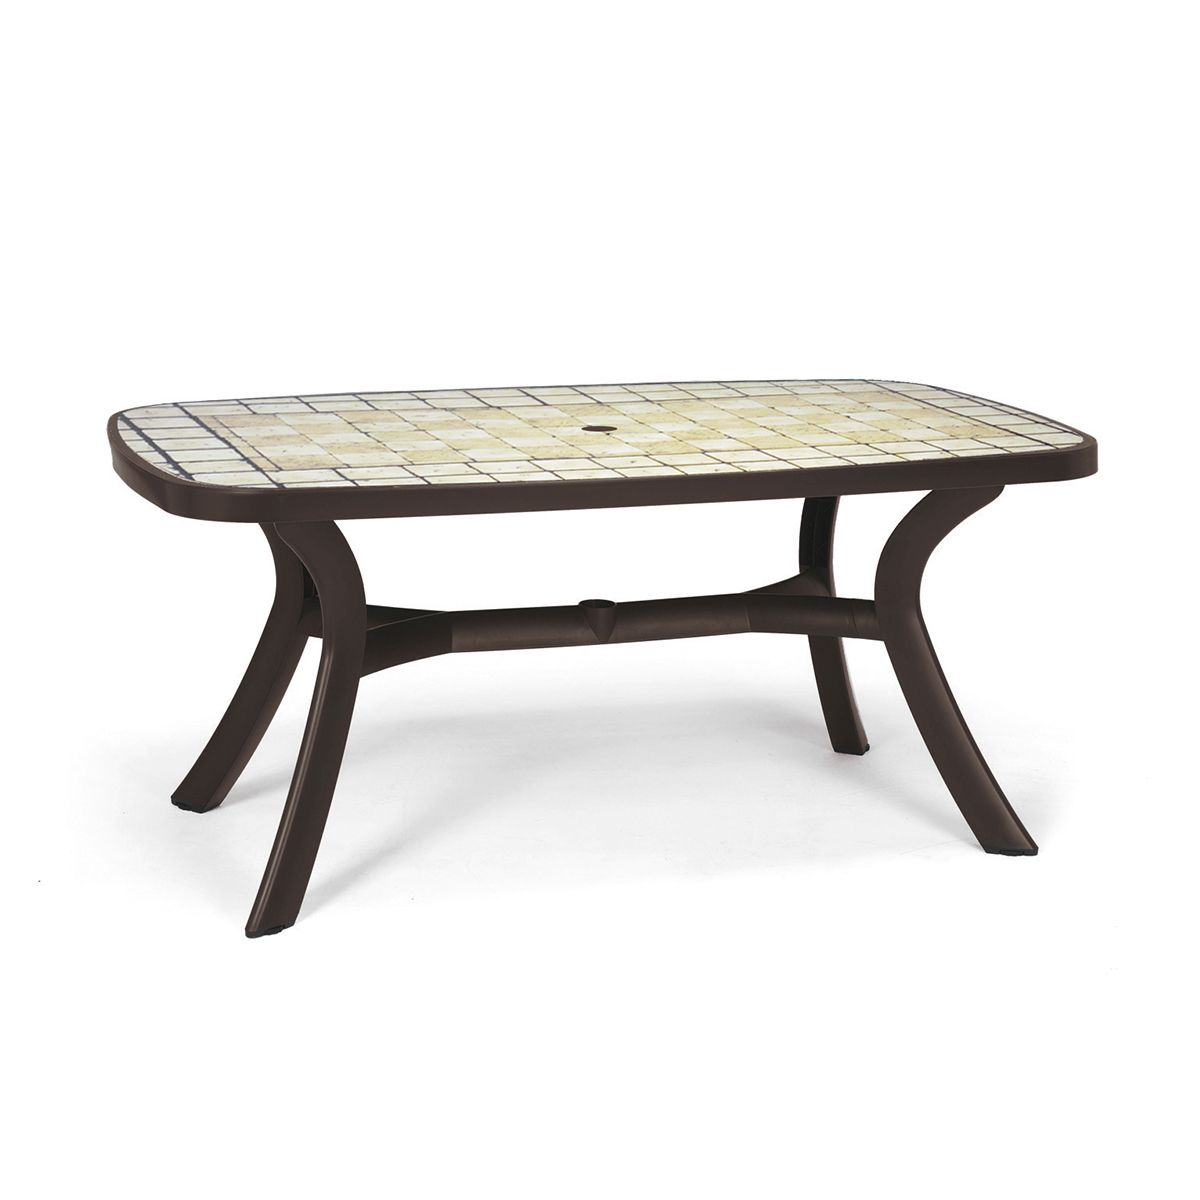 Table d montable ovale nardi toscana 165 tables manger for Meuble de jardin nardi